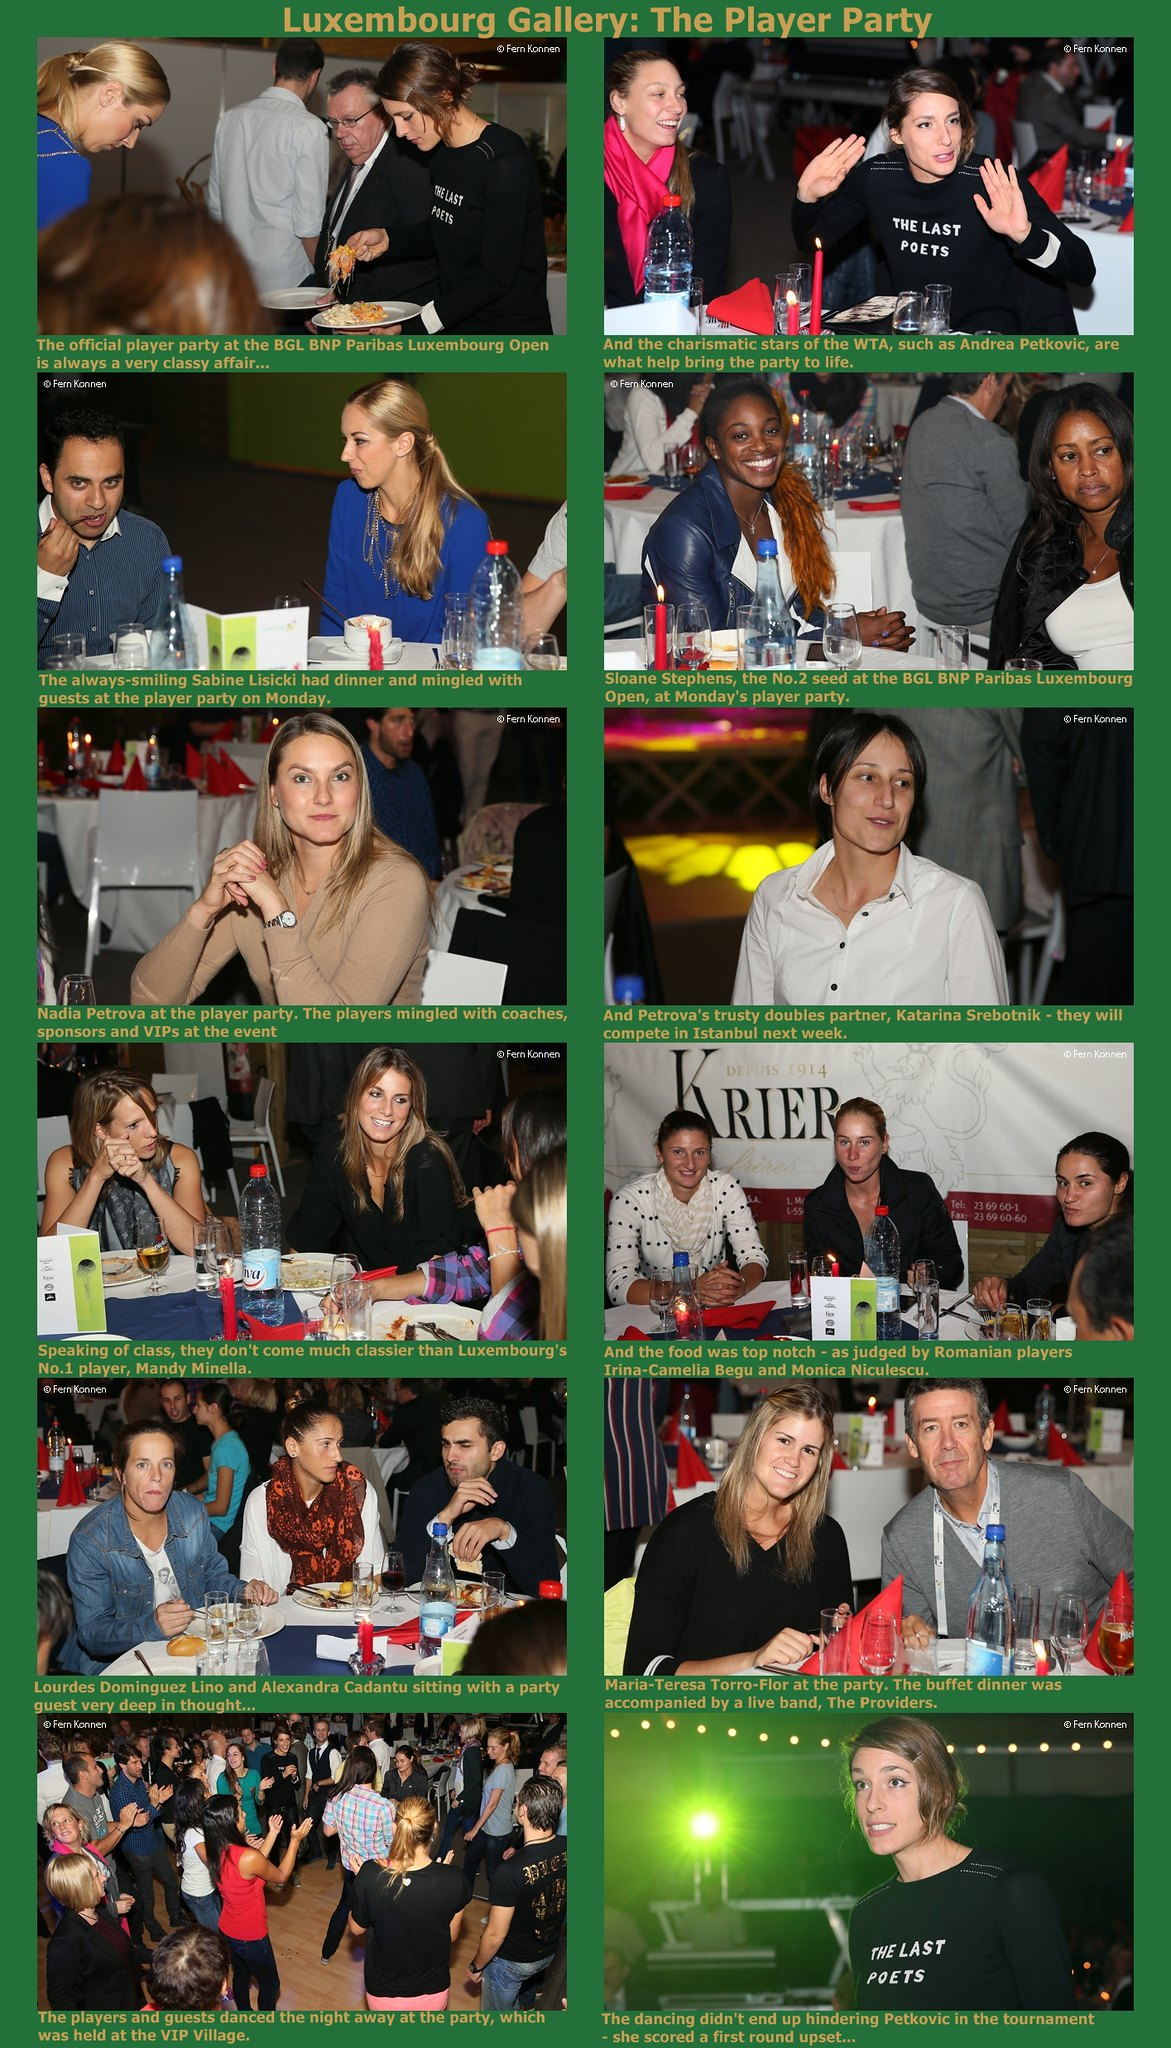 Luxembourg Gallery: The Player Party 10326746623_a0b43b98f5_k